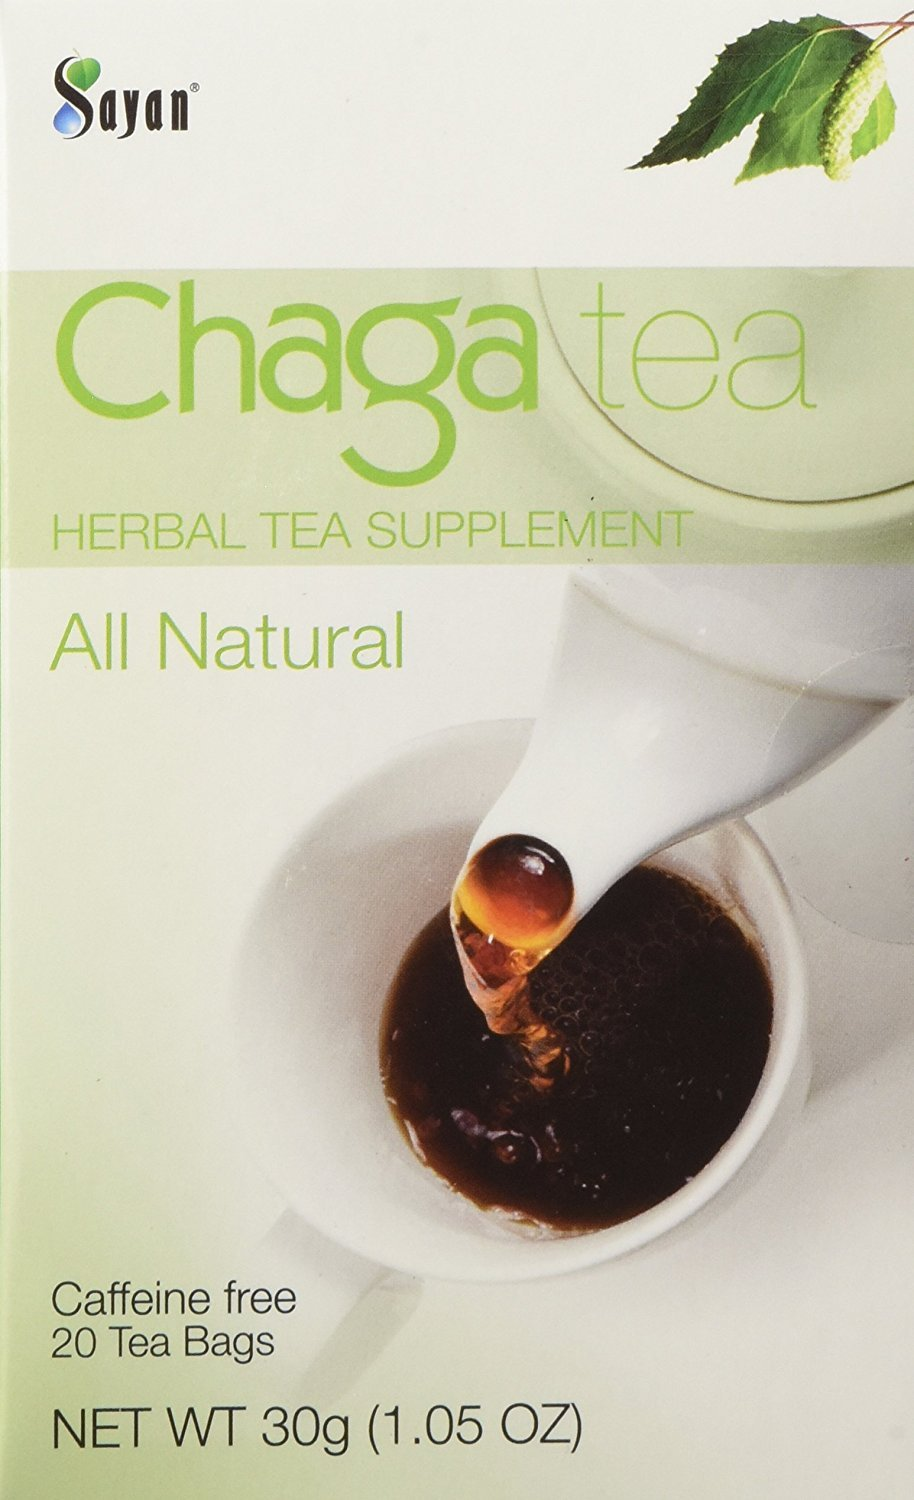 Sayan Siberian Chaga Mushroom Tea (Unbleached 20 Tea Bags, Caffeine Free) Exclusive blend of Raw + Extract, Wild Harvested Herbal Supplement and Natural Antioxidant